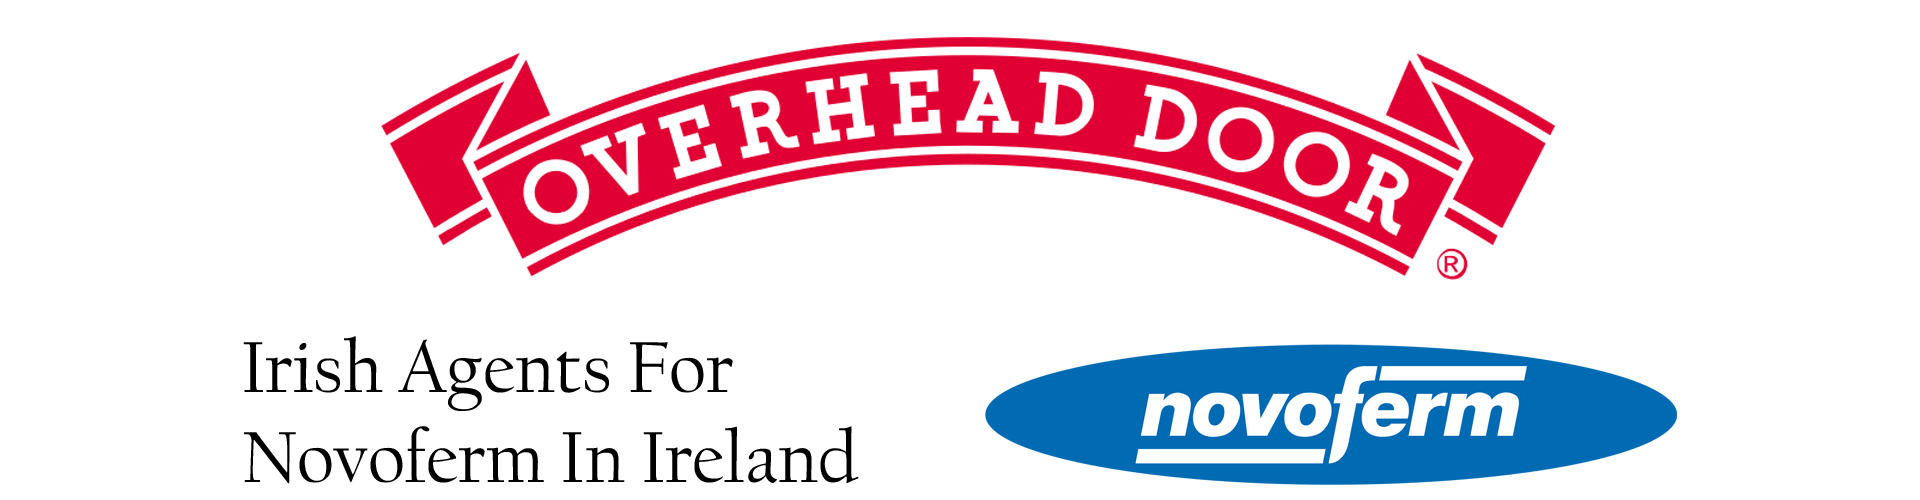 Overhead Door Ireland are agents for Novoferm Ireland